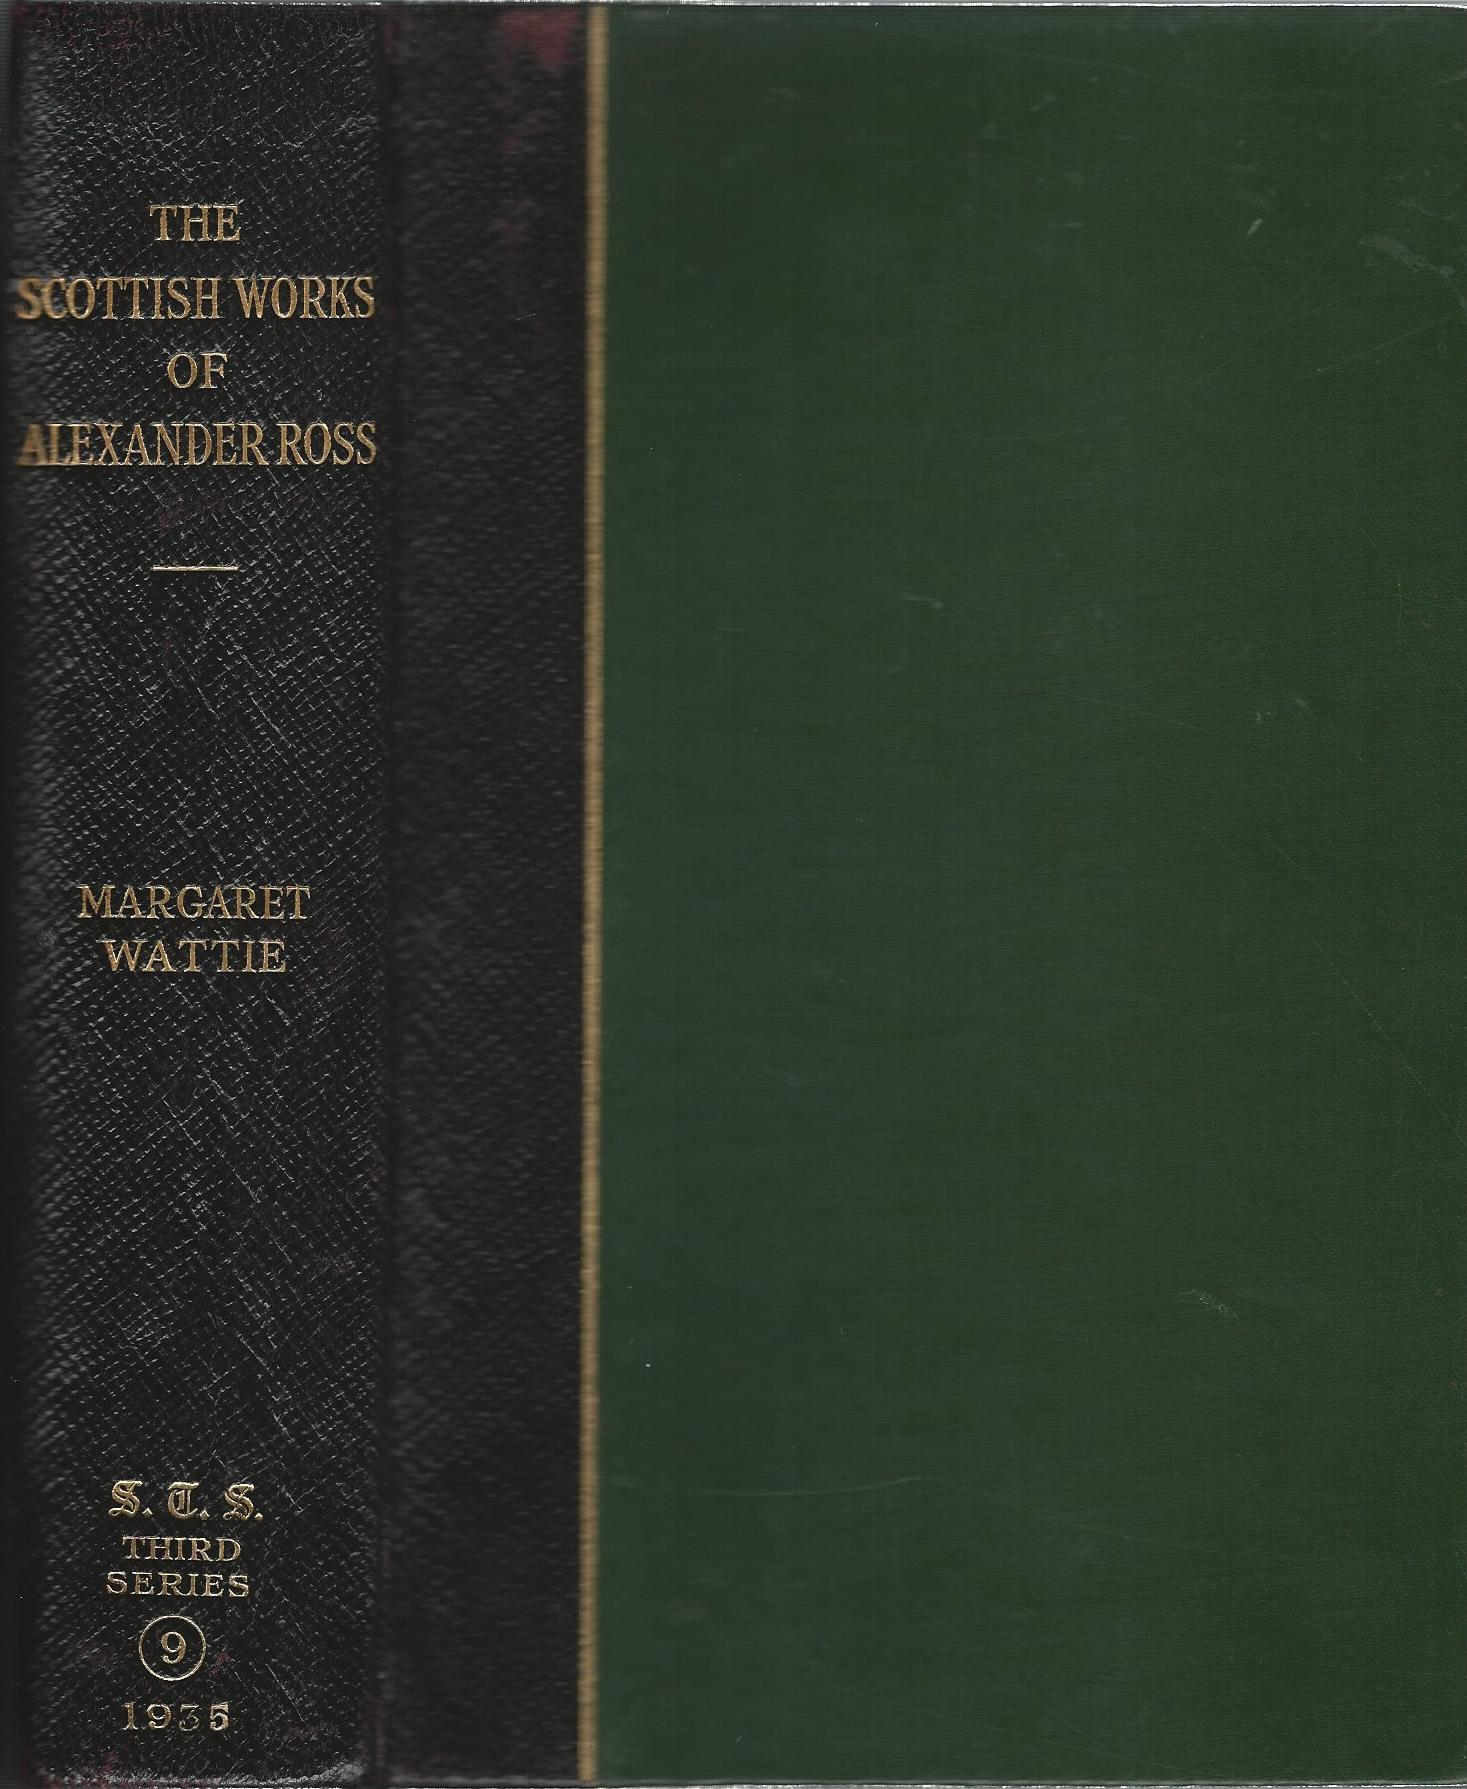 Image for The Scottish Works of Alexander Ross Consisting of: Helenore, or The Fortunate Shepherdess; Songs; The Fortunate Shepherd, or The Orphan.